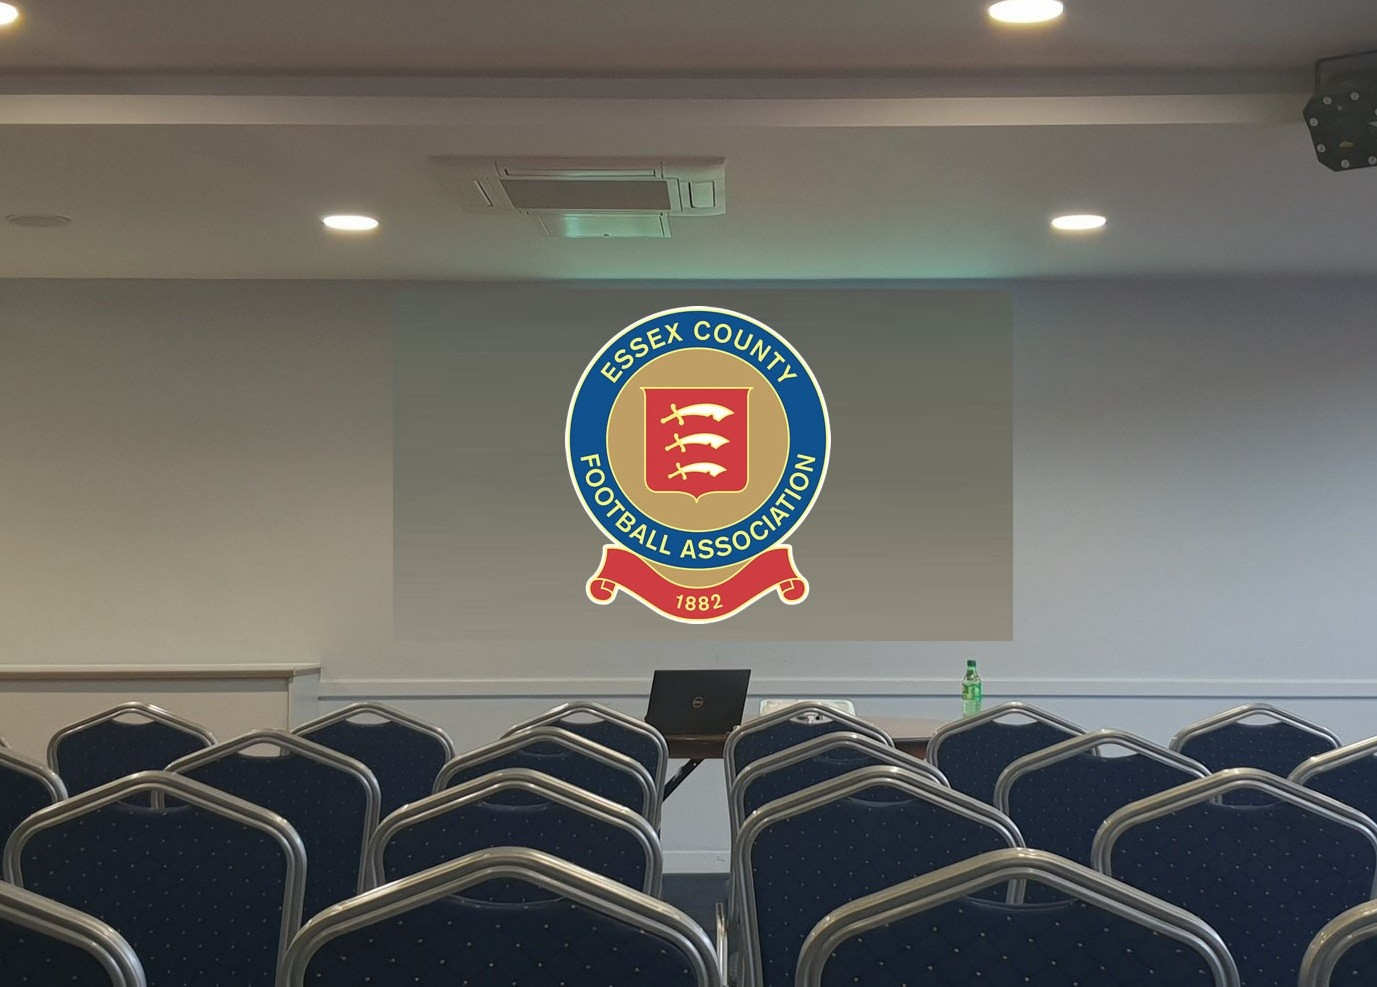 Club Development Meeting at Dagenham